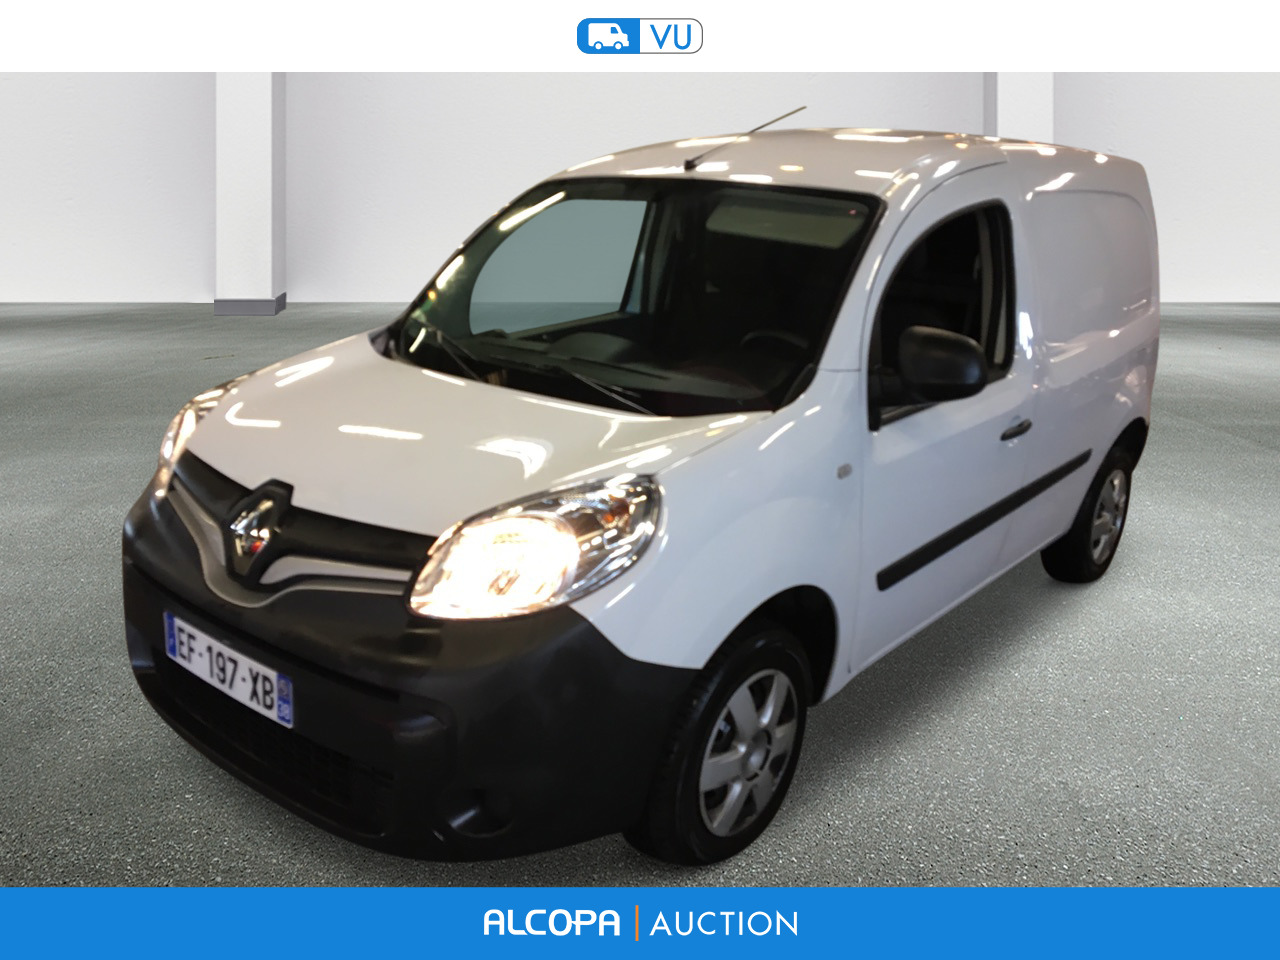 renault kangoo kangoo express 1 5 dci 75 energy grand confort e6 alcopa auction. Black Bedroom Furniture Sets. Home Design Ideas